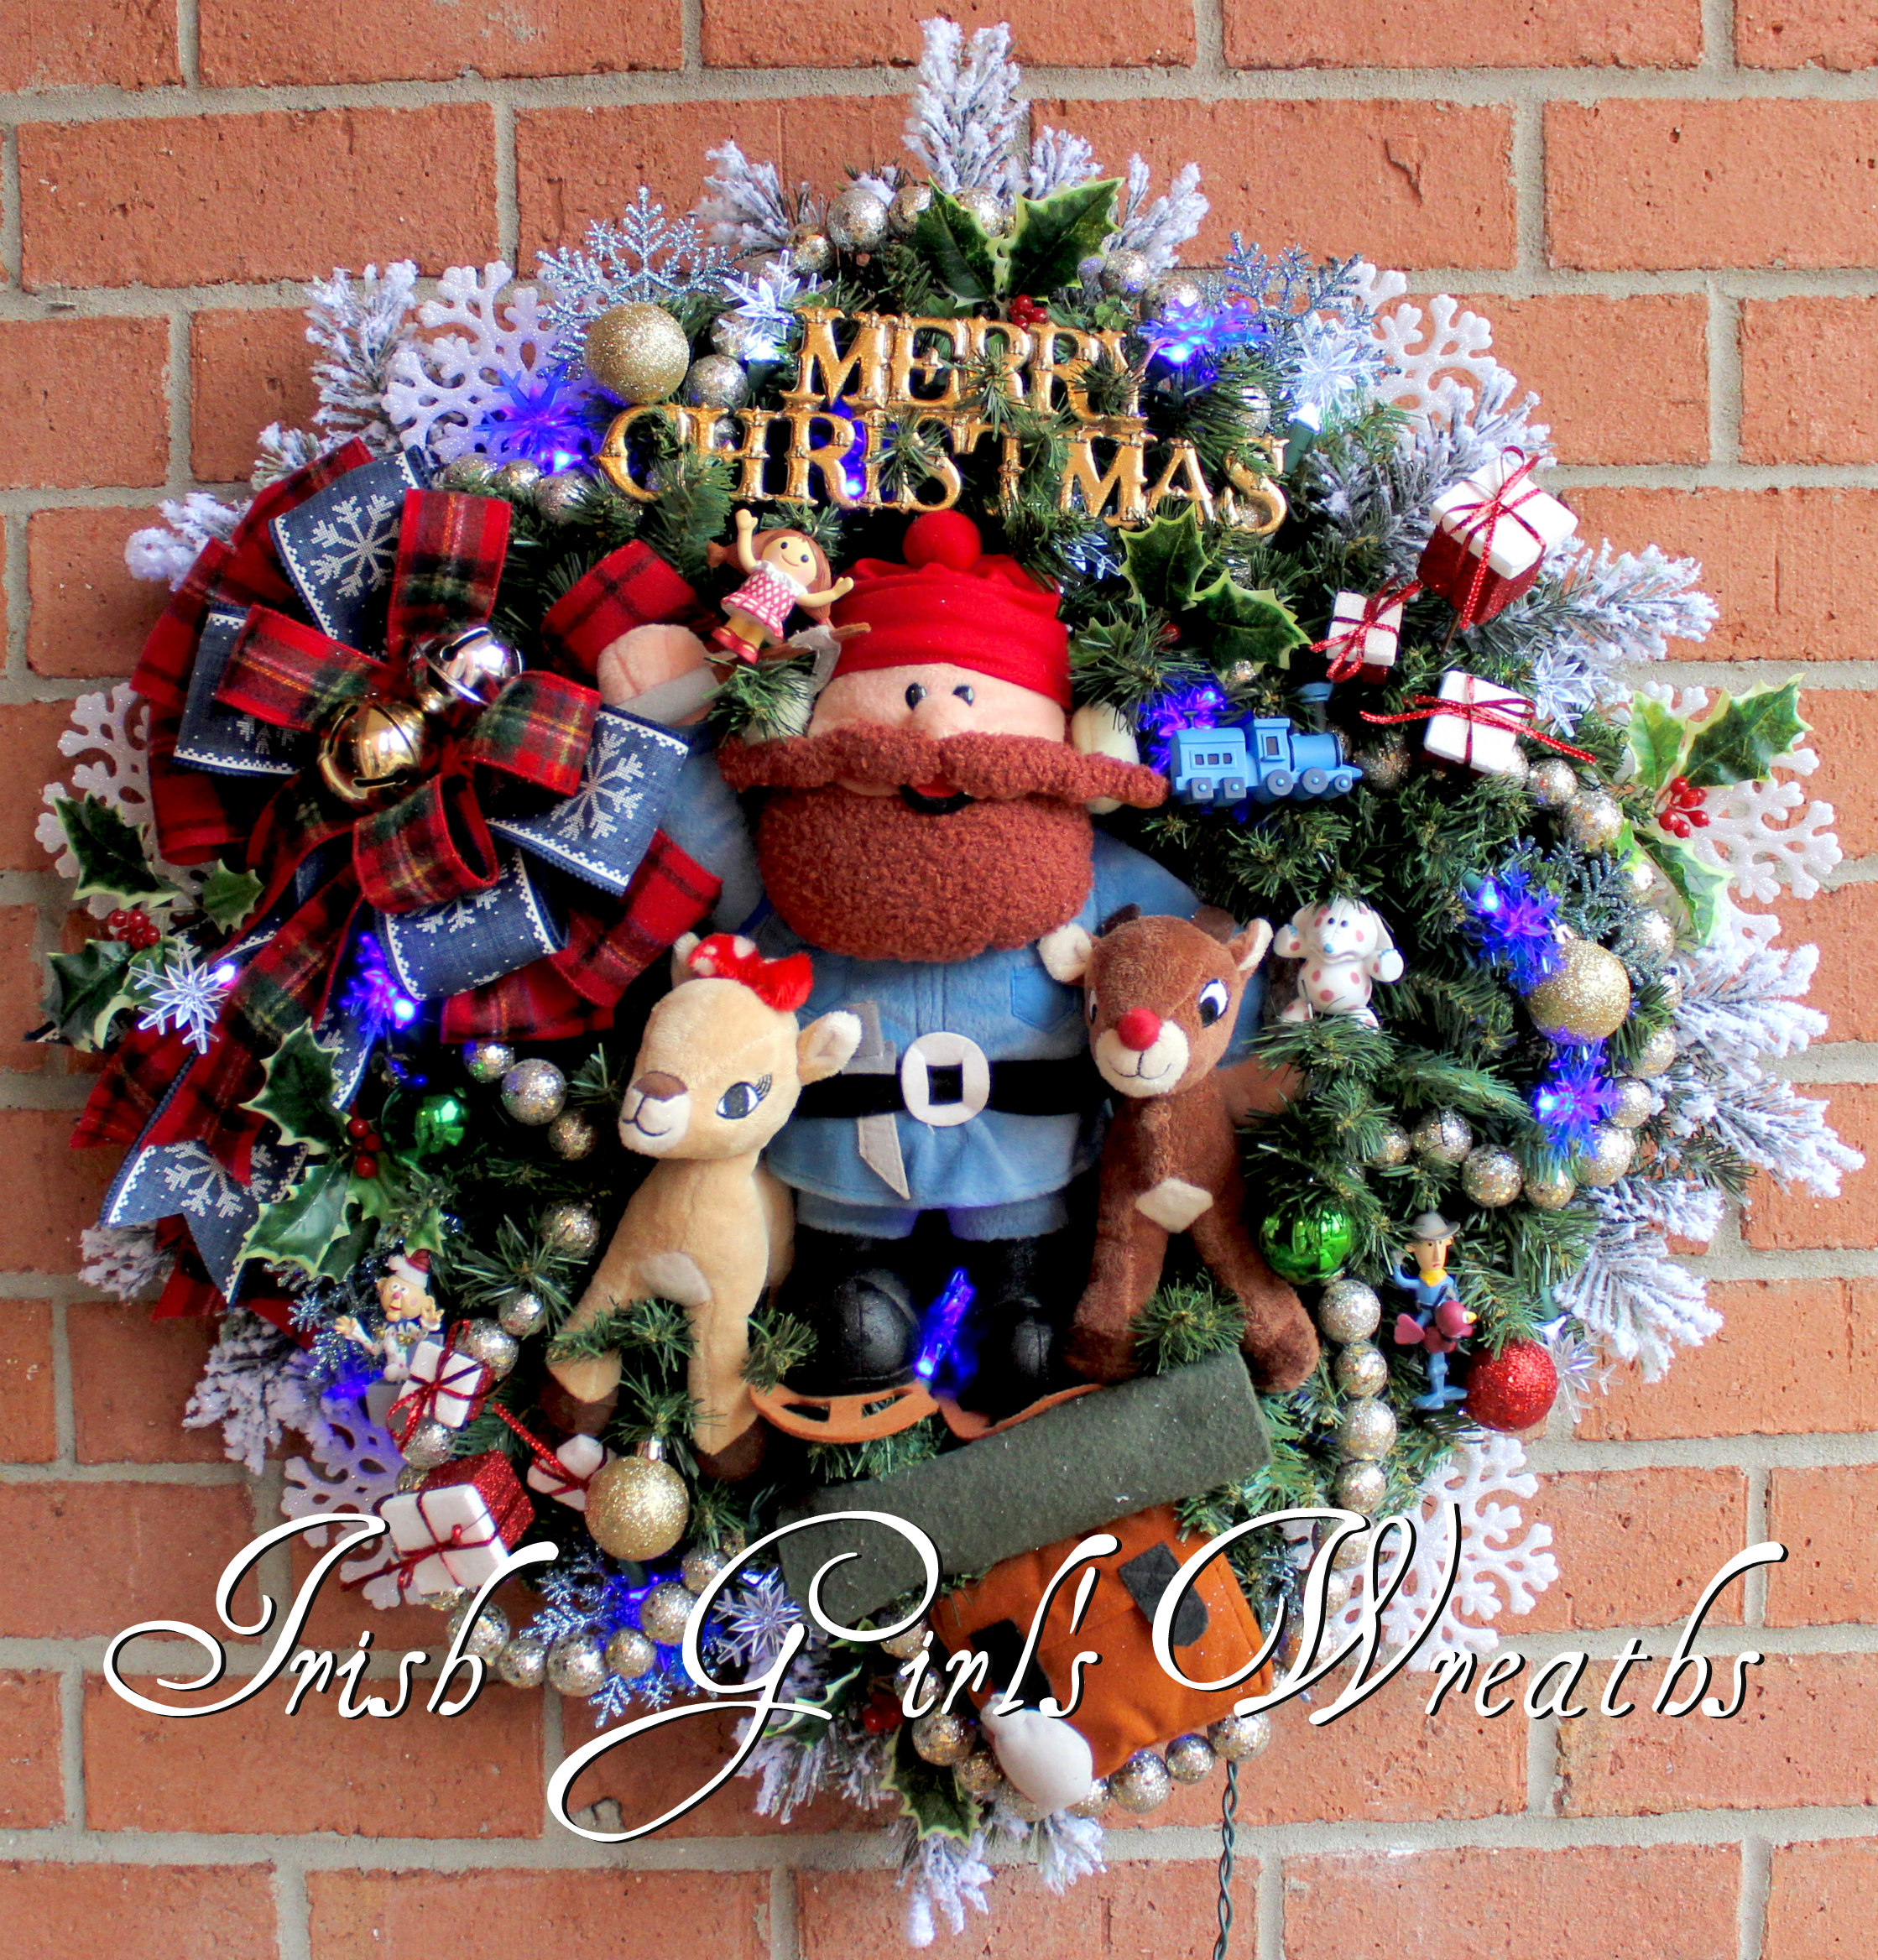 Custom order Yukon Cornelius with Rudolph and Clarice Christmas Wreath with snowflake lights, for Christine